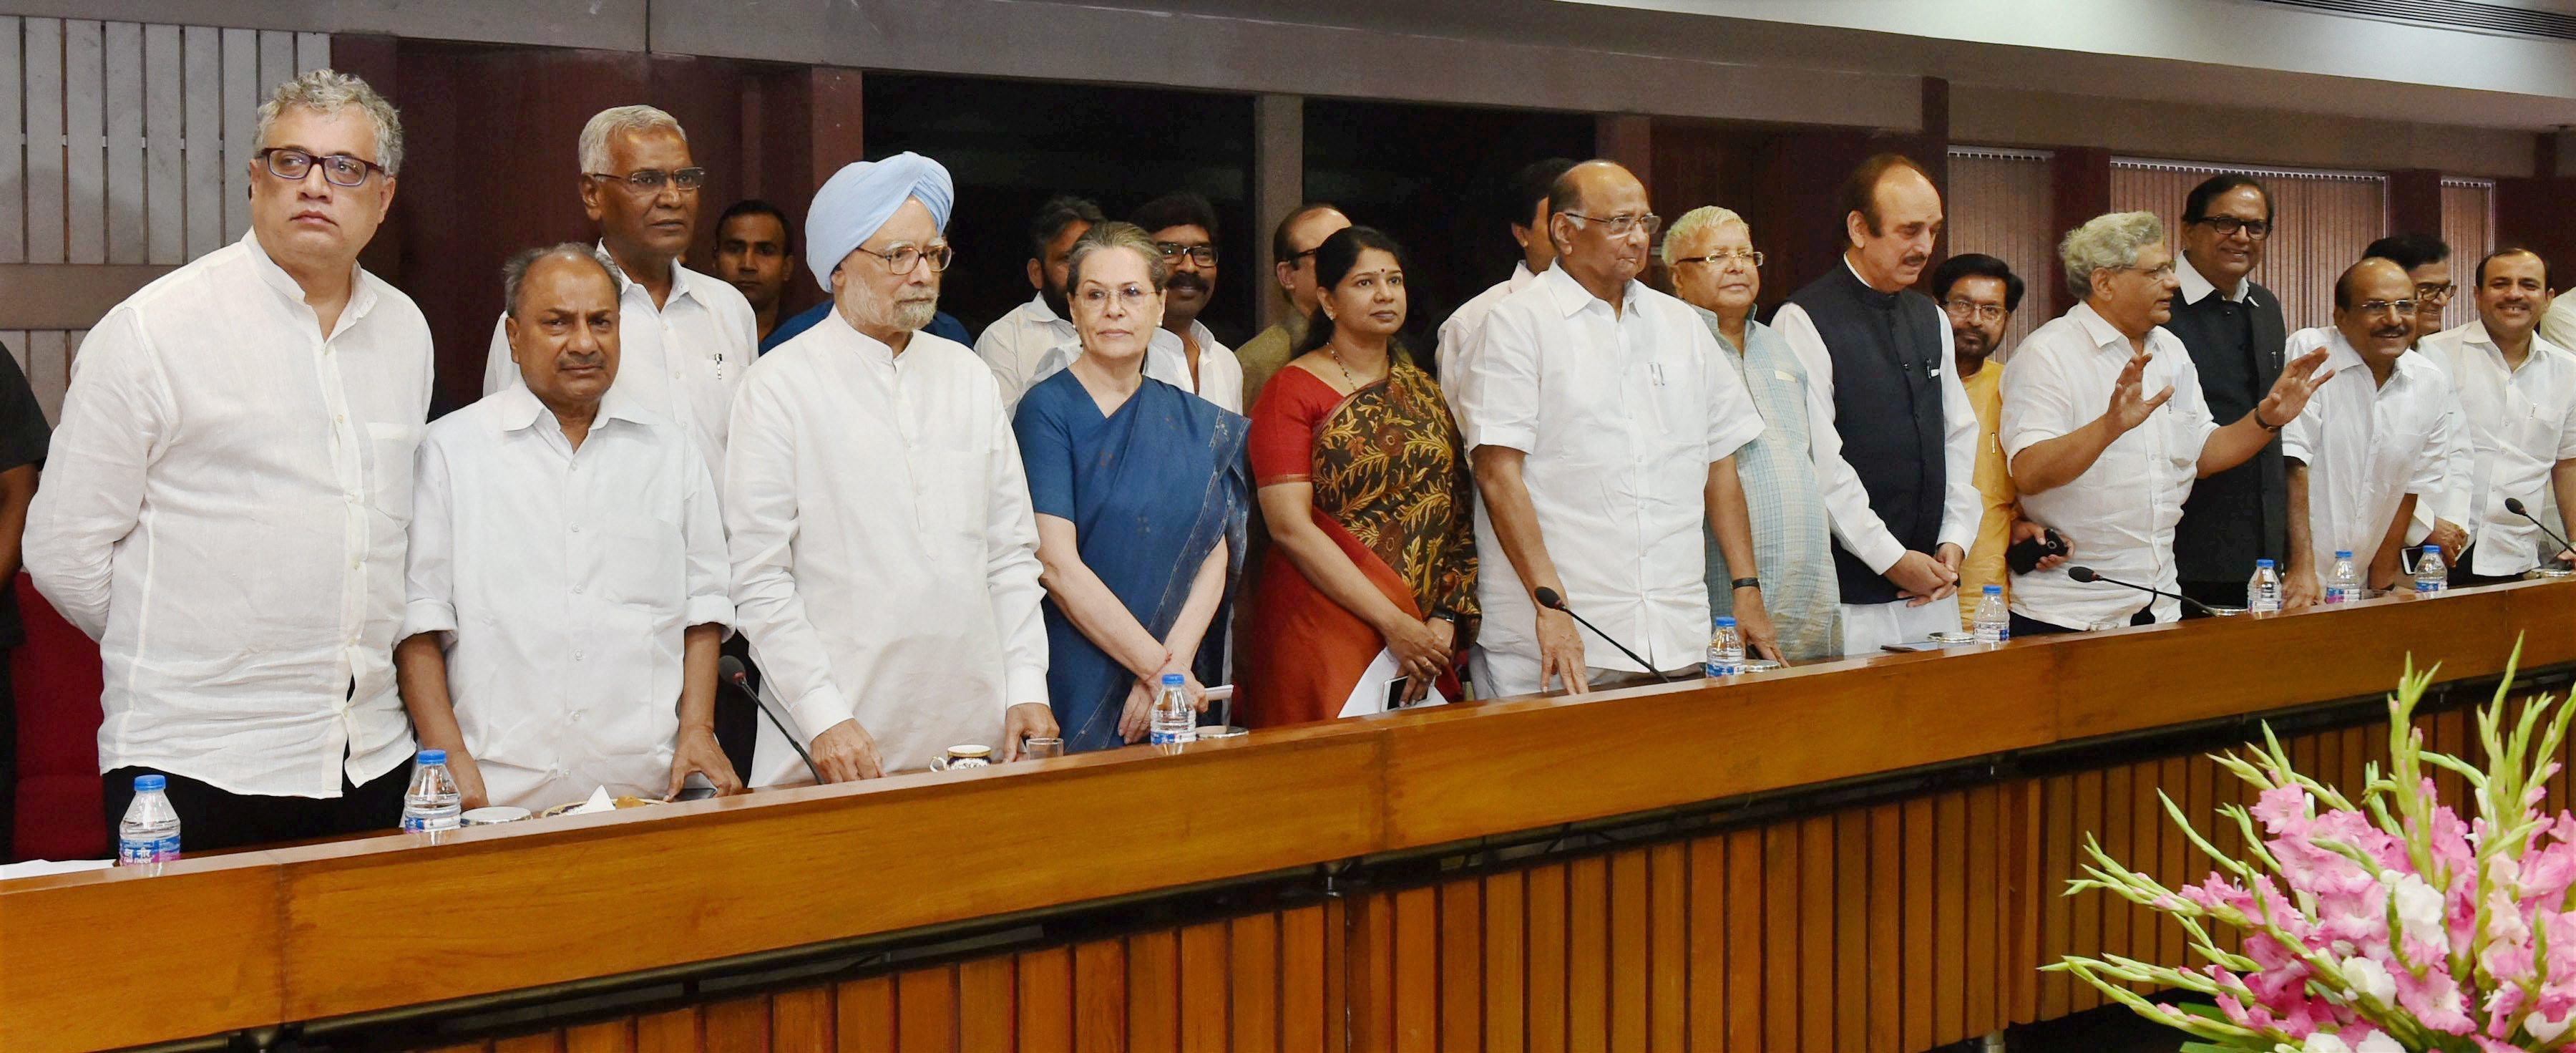 Opposition leaders representing 17 parties met in Delhi on Thursday to decide on a joint Presidential candidate.